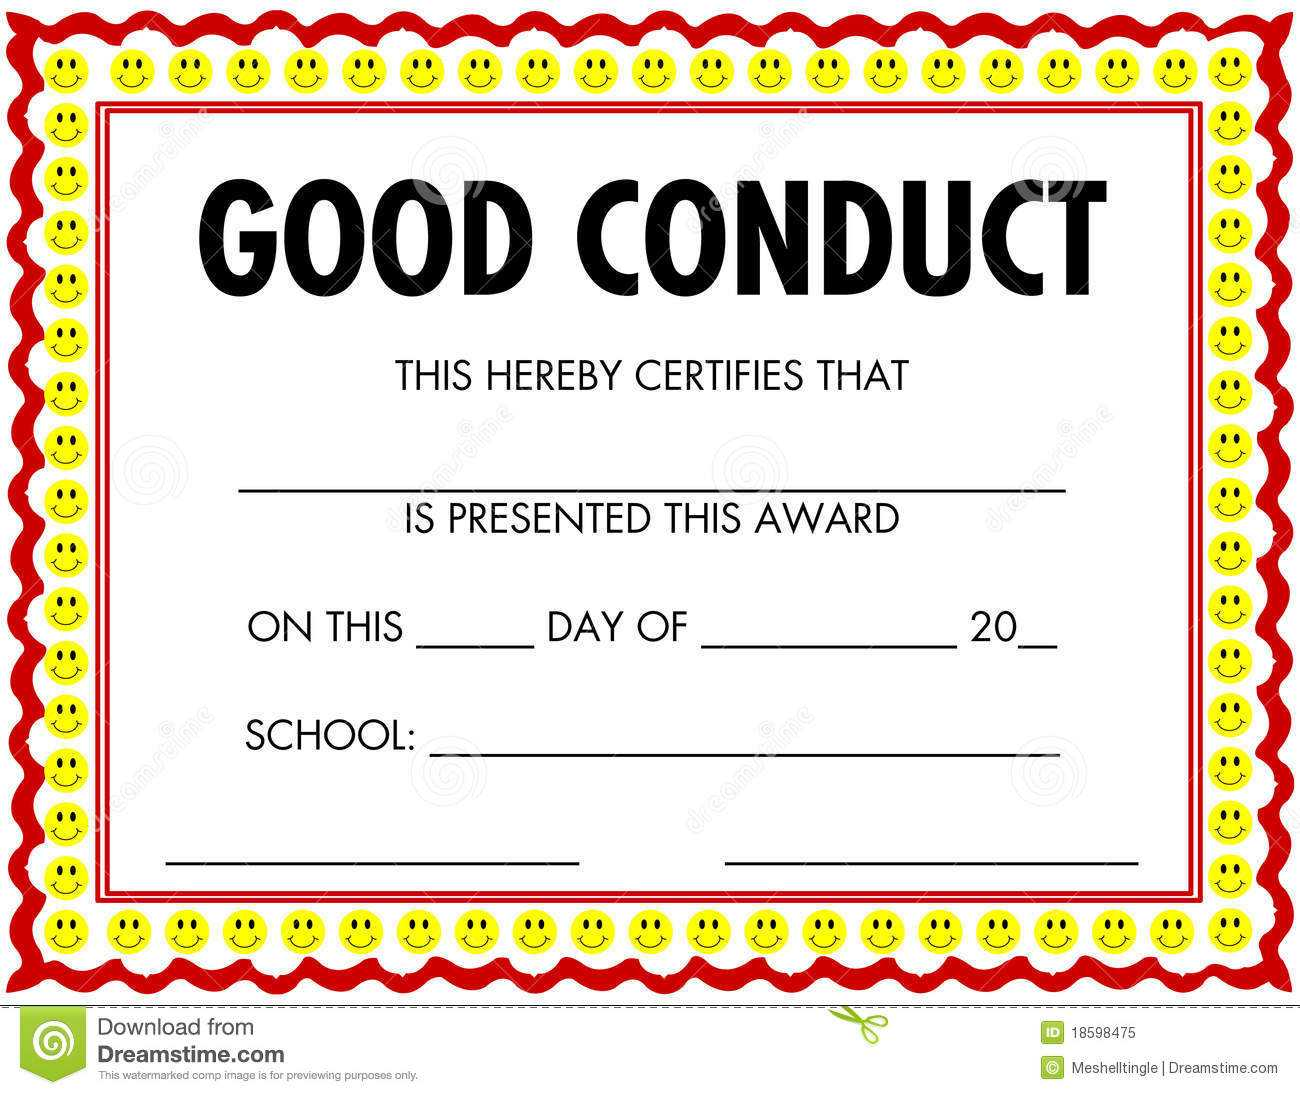 Award Certificate Good Conduct Stock Vector - Illustration Inside Good Conduct Certificate Template